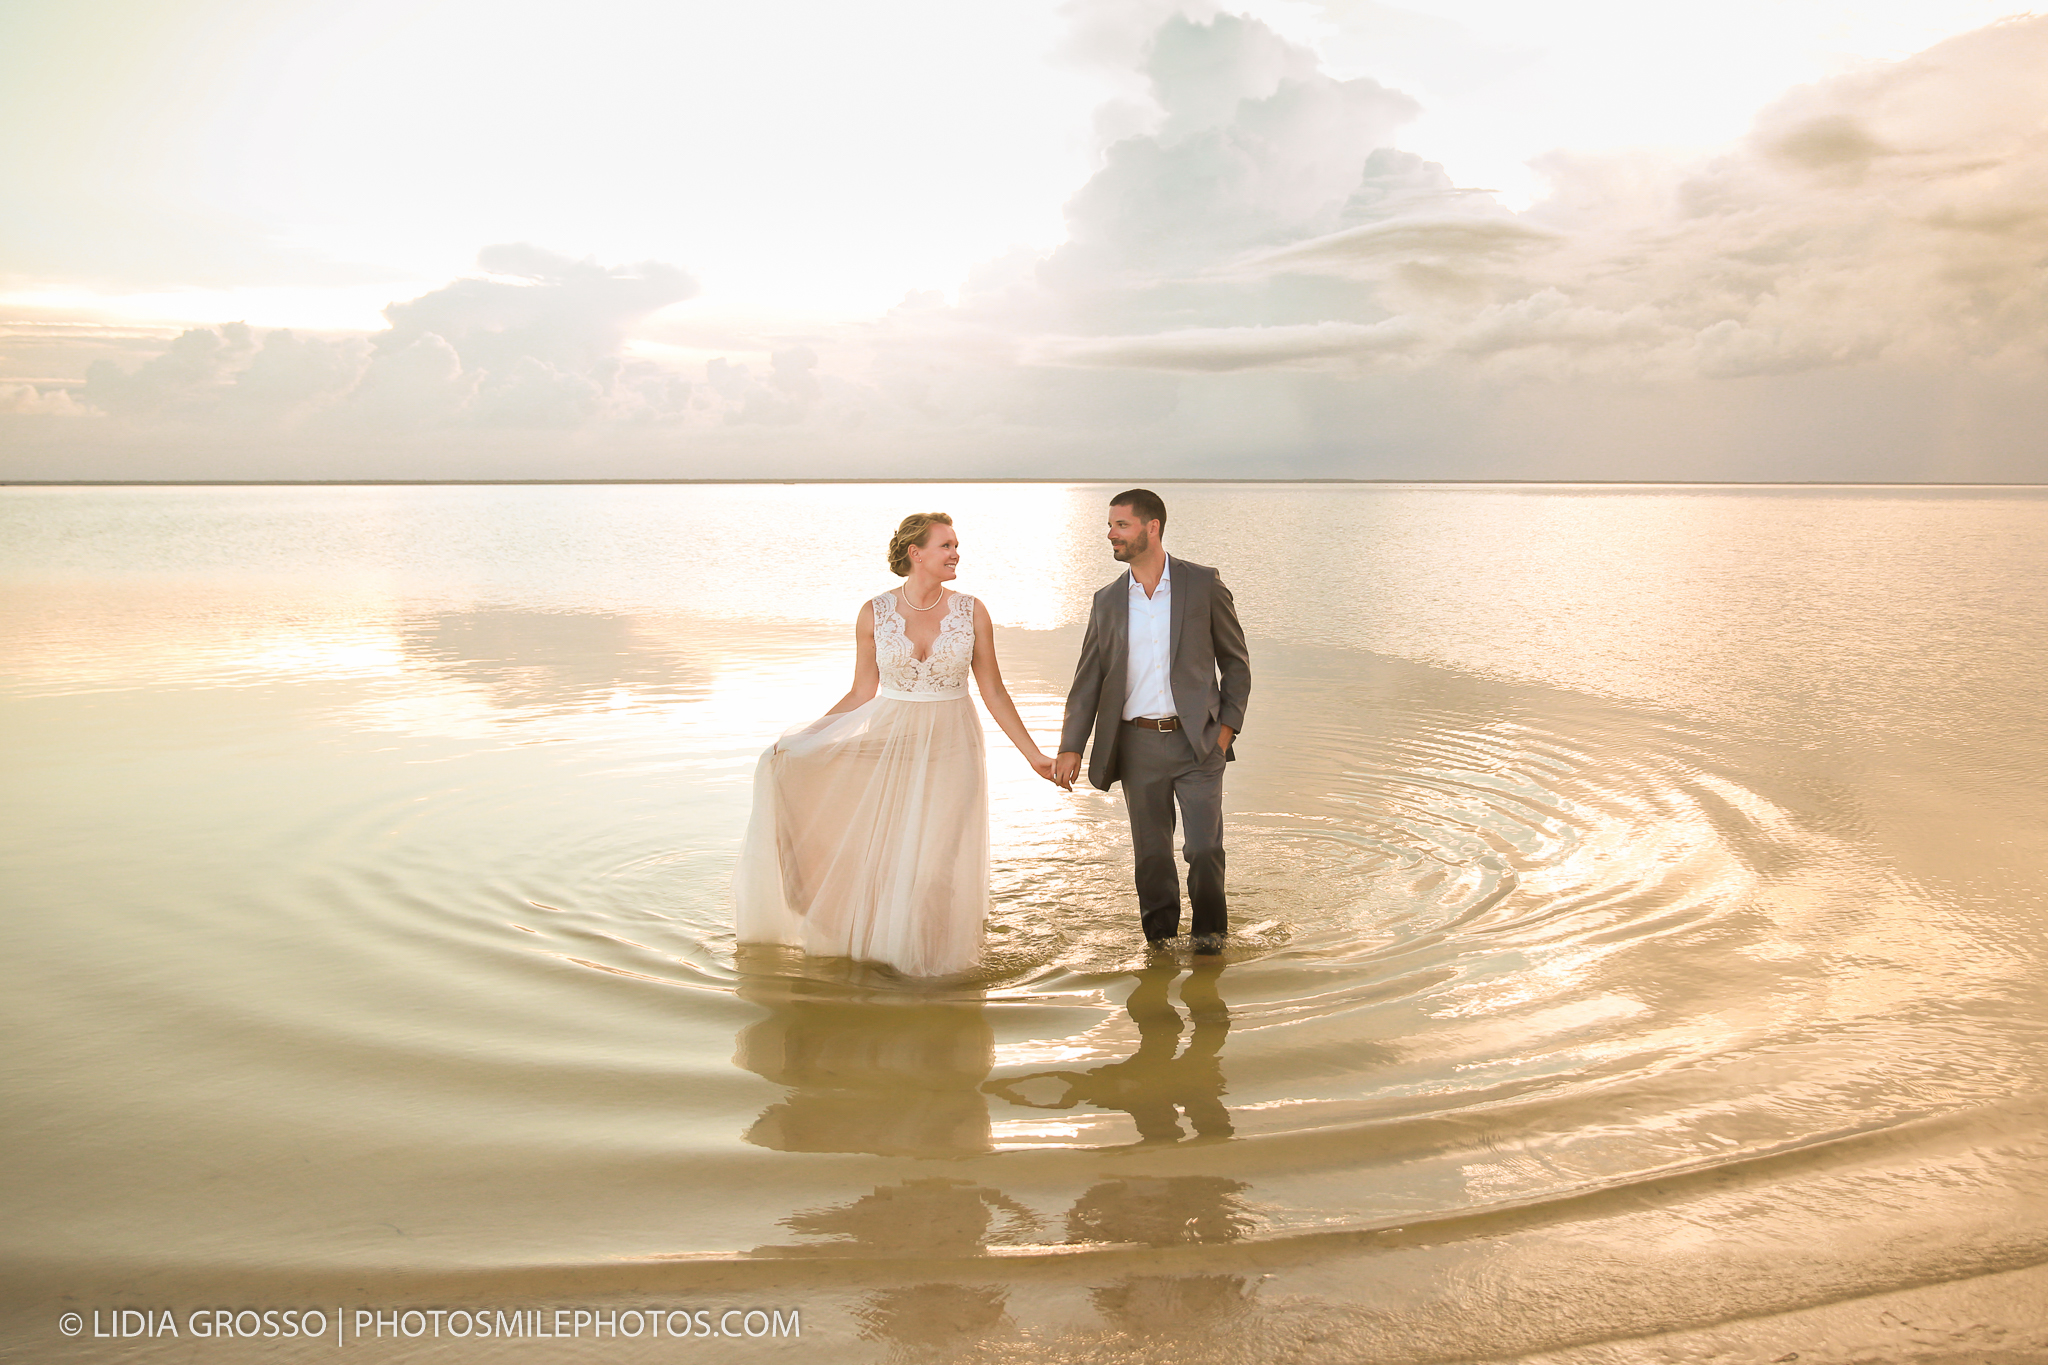 low-res-Daniela-Tom-wedding-Isla-blanca-239.jpg